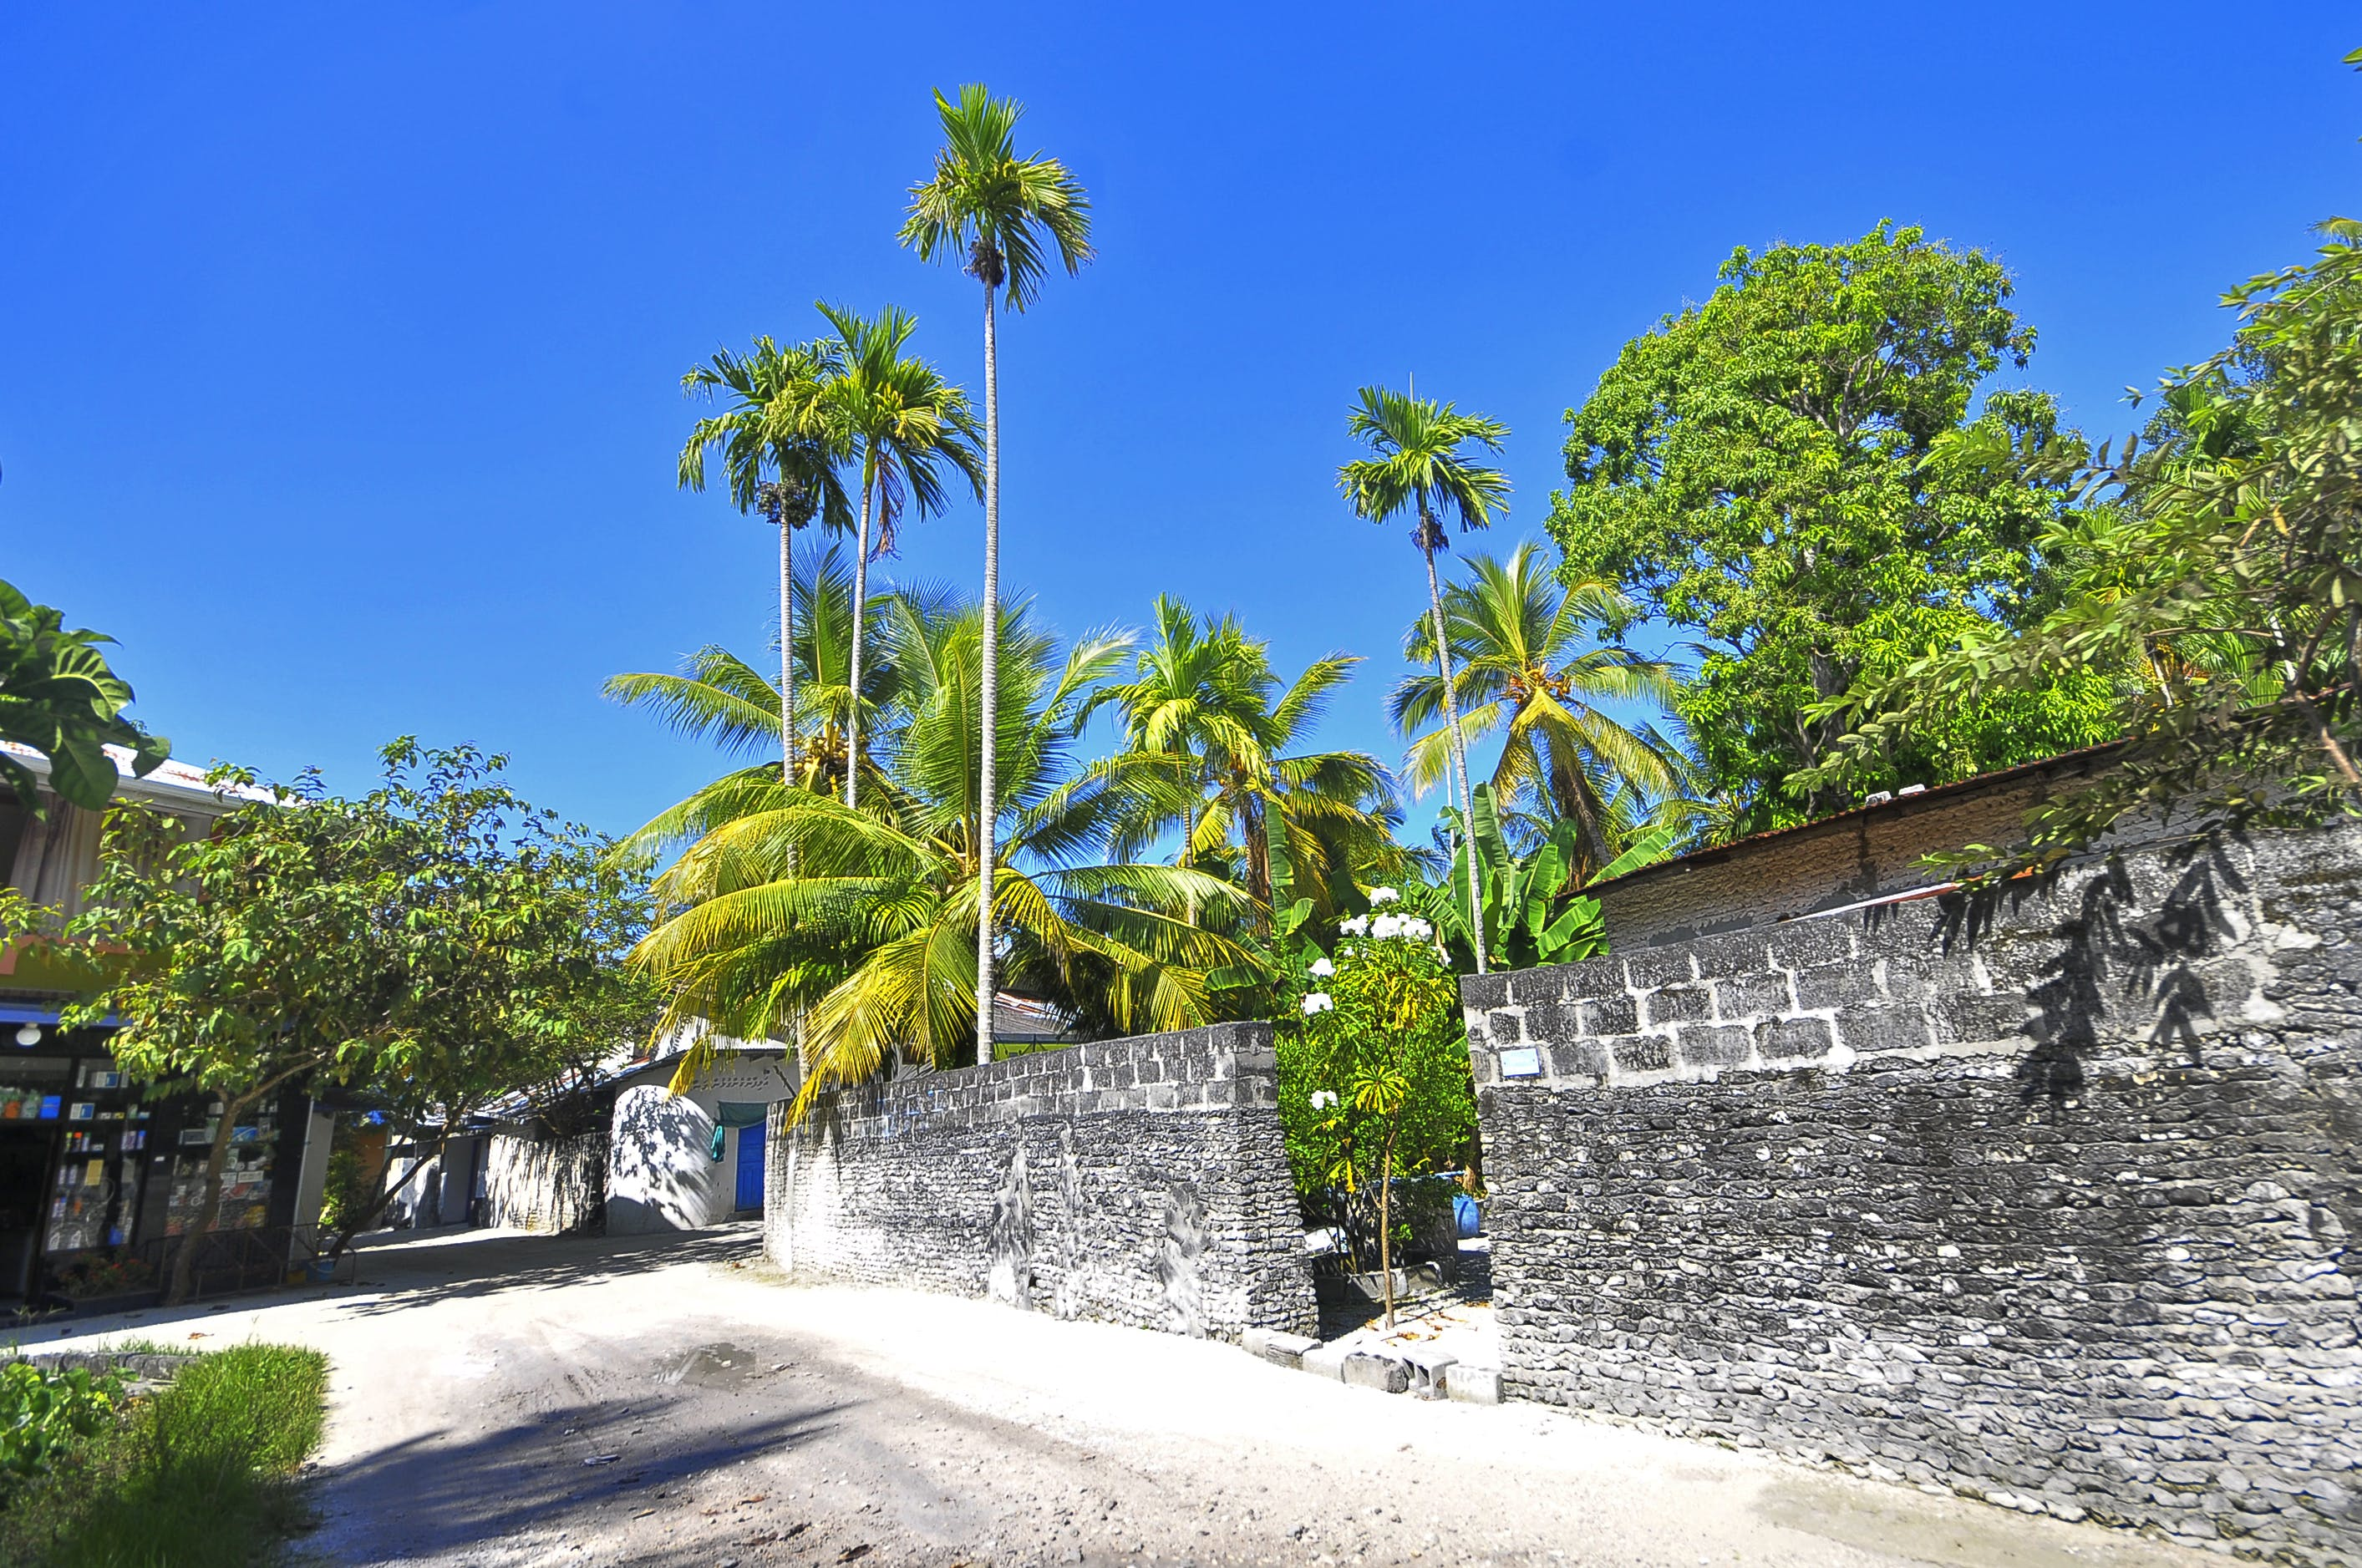 Coconut Trees Inside the Concrete Wall